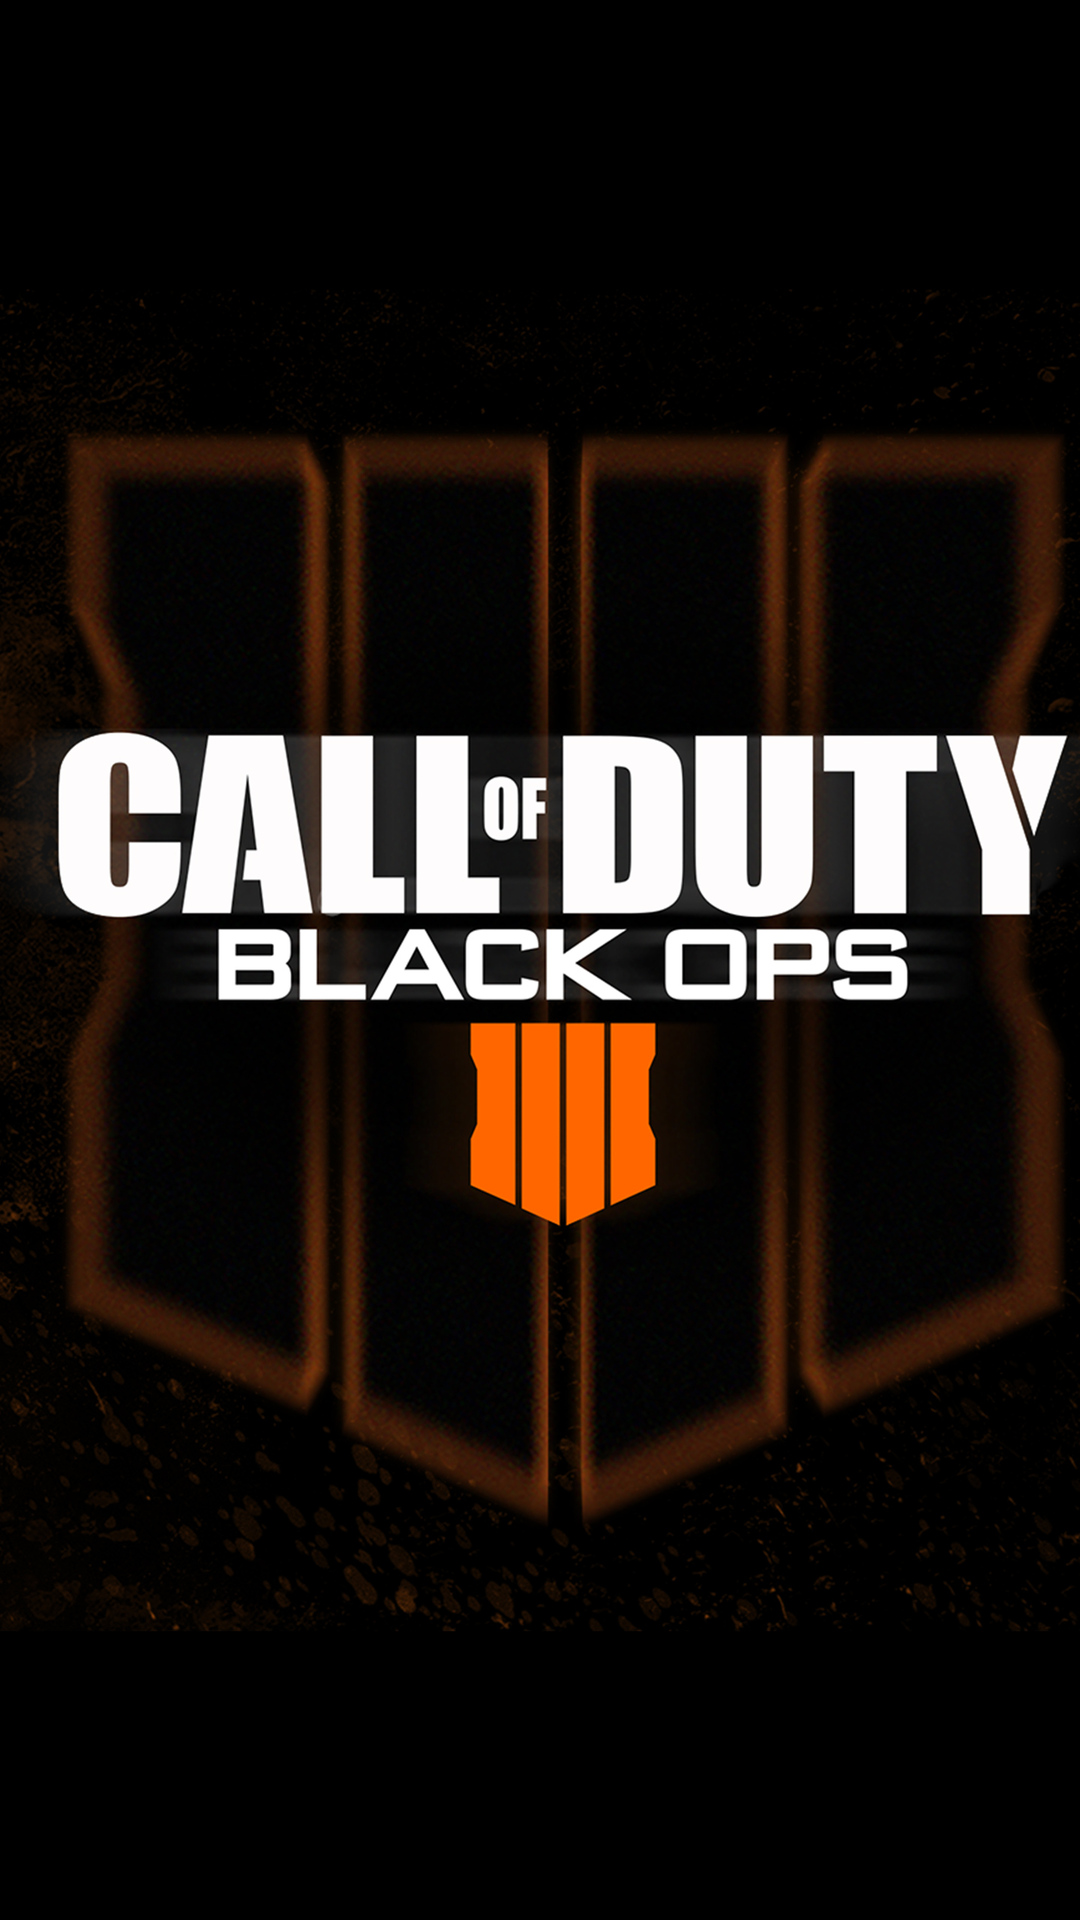 1080x1920 call of duty black ops 4 iphone 7 6s 6 plus - Black ops 4 logo wallpaper ...